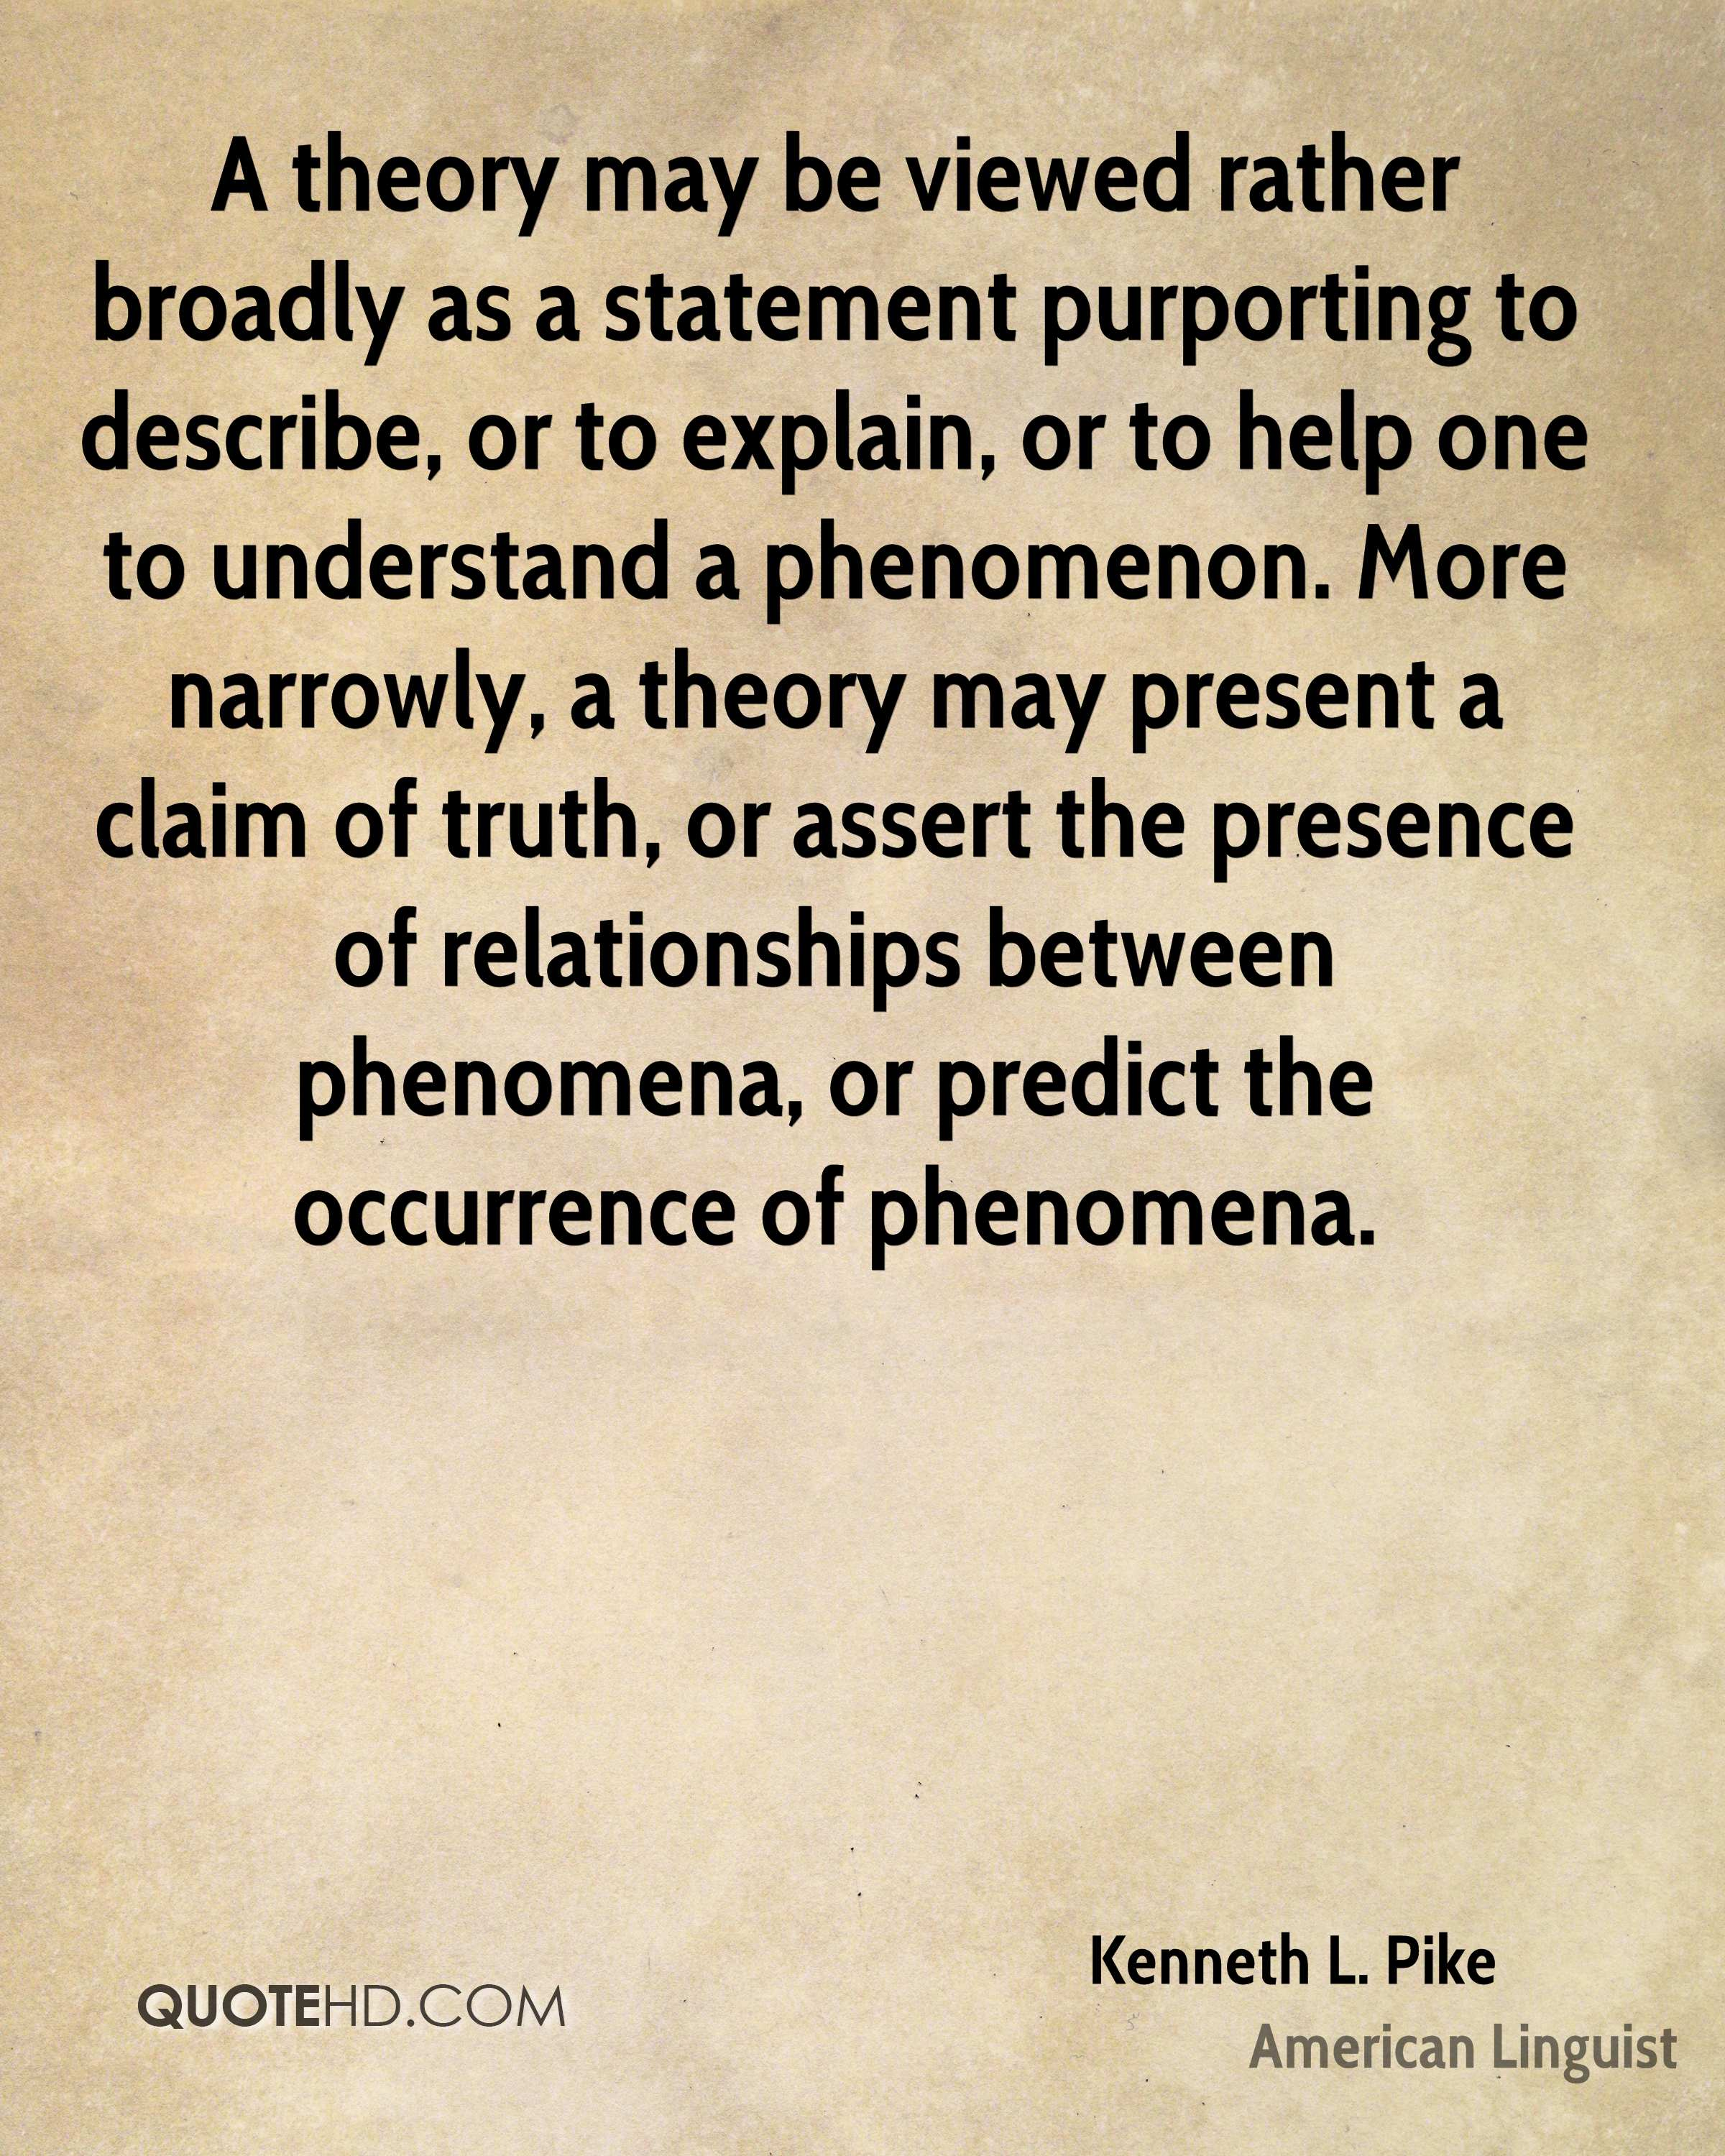 A theory may be viewed rather broadly as a statement purporting to describe, or to explain, or to help one to understand a phenomenon. More narrowly, a theory may present a claim of truth, or assert the presence of relationships between phenomena, or predict the occurrence of phenomena.